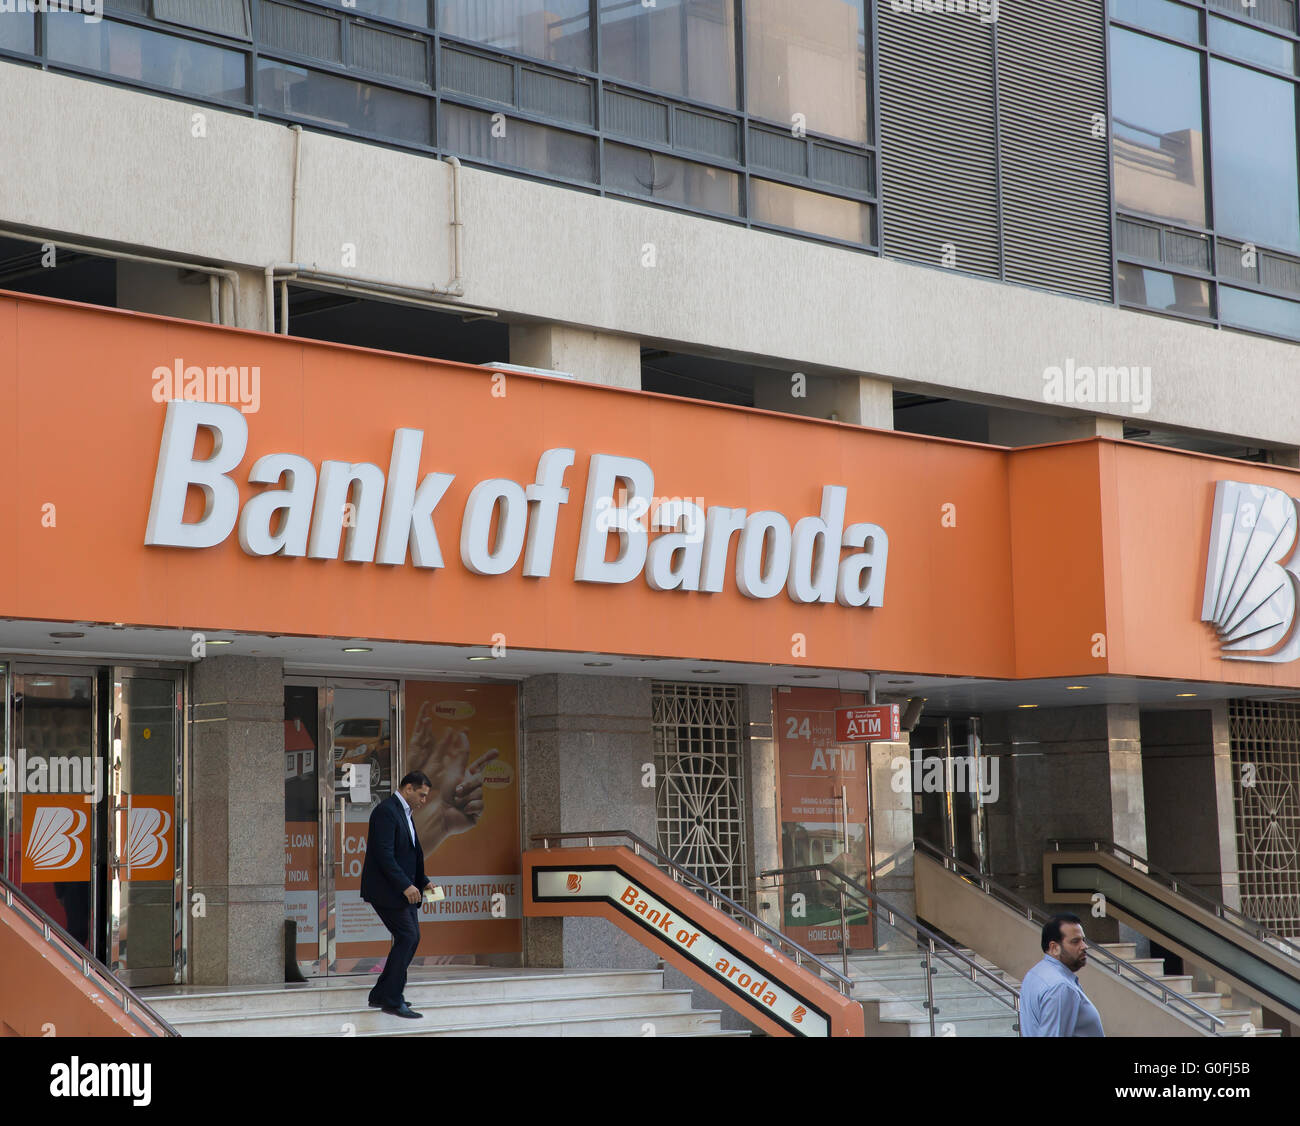 bank of baroda in dubai